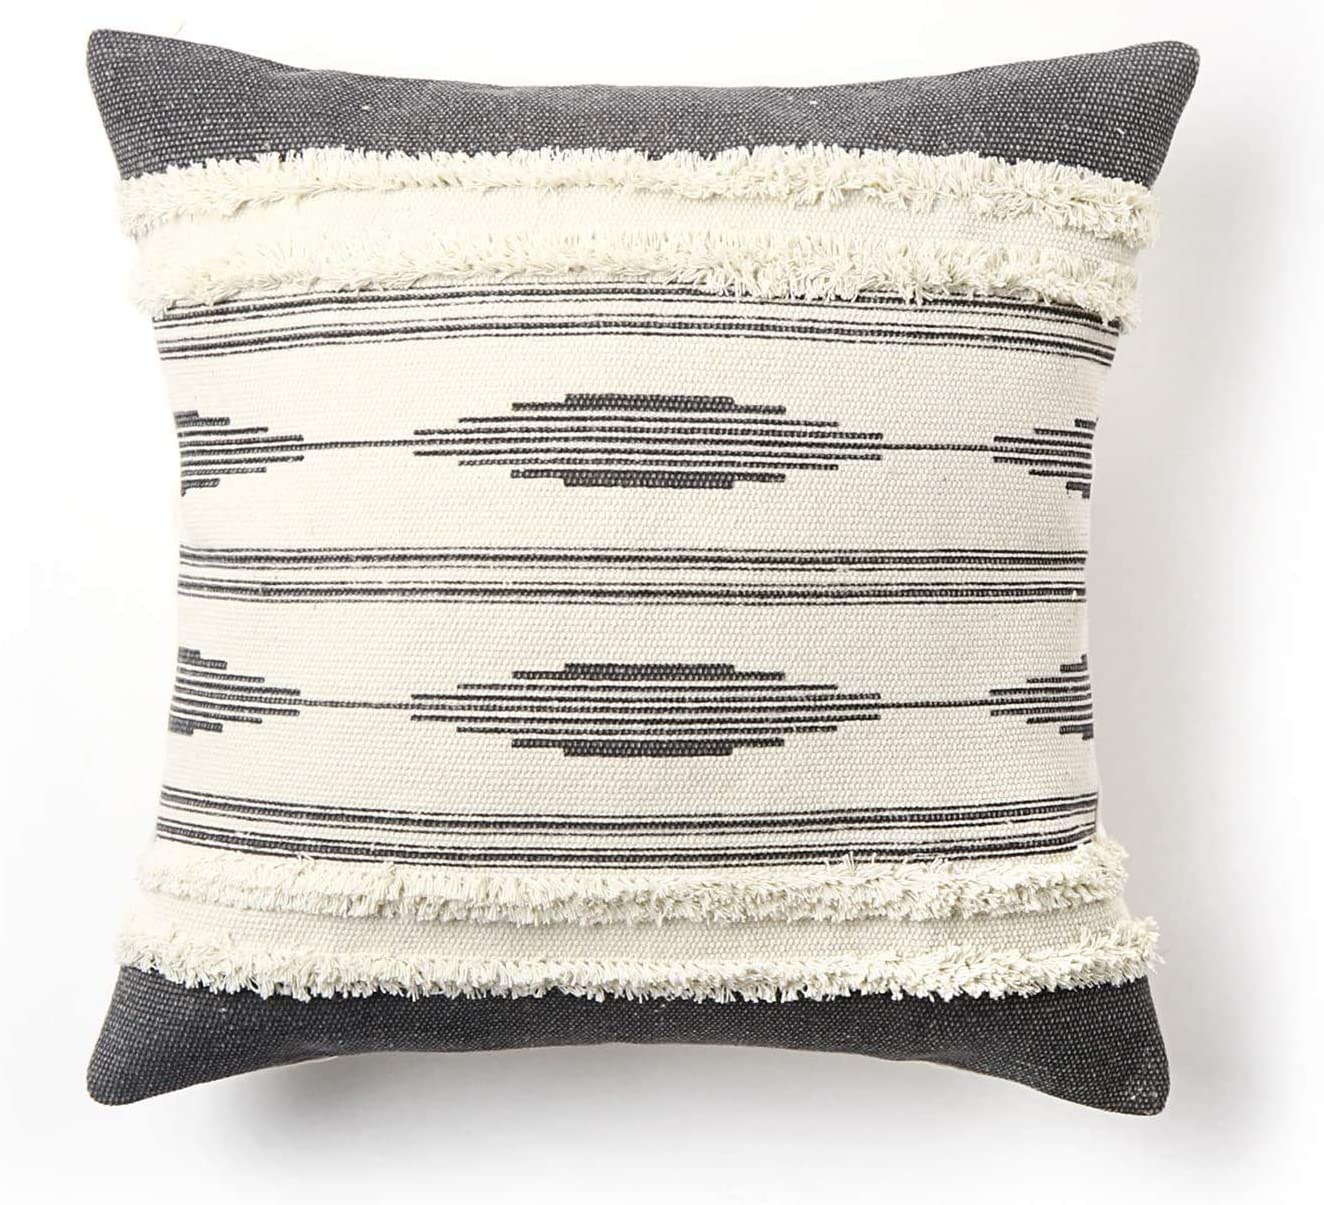 Ailsan Boho Tufted Throw Pillow Cover 18x18 inches Simple Black Euro Hand Woven Pillows Case Geometric Stripes Decorative Cushion Cover for Sofa Couch Bedroom Living Room Office Chair